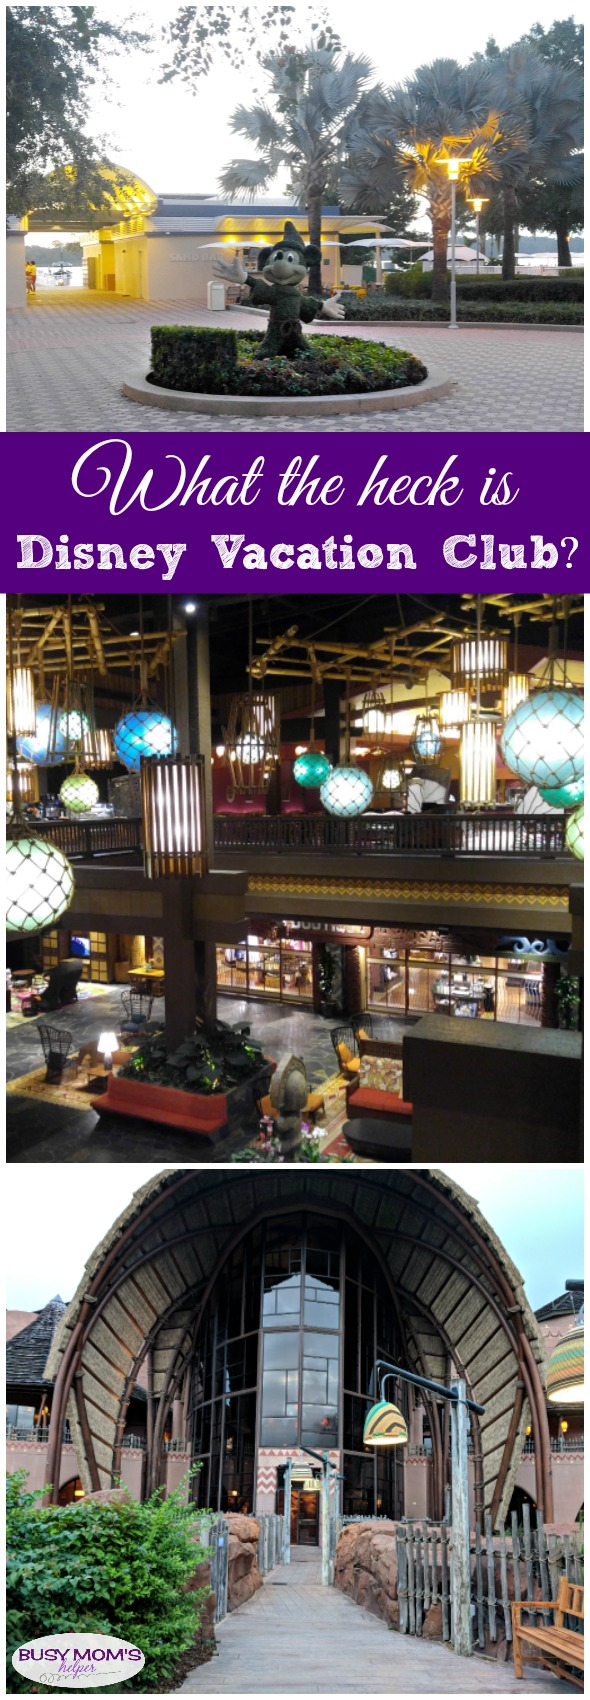 Everything you need to know about Disney Vacation Club aka: DVC #disney #waltdisneyworld #disneyland #hotels #disneyhotels #disneyvacationclub #dvc #disneyparks #travel #familytravel